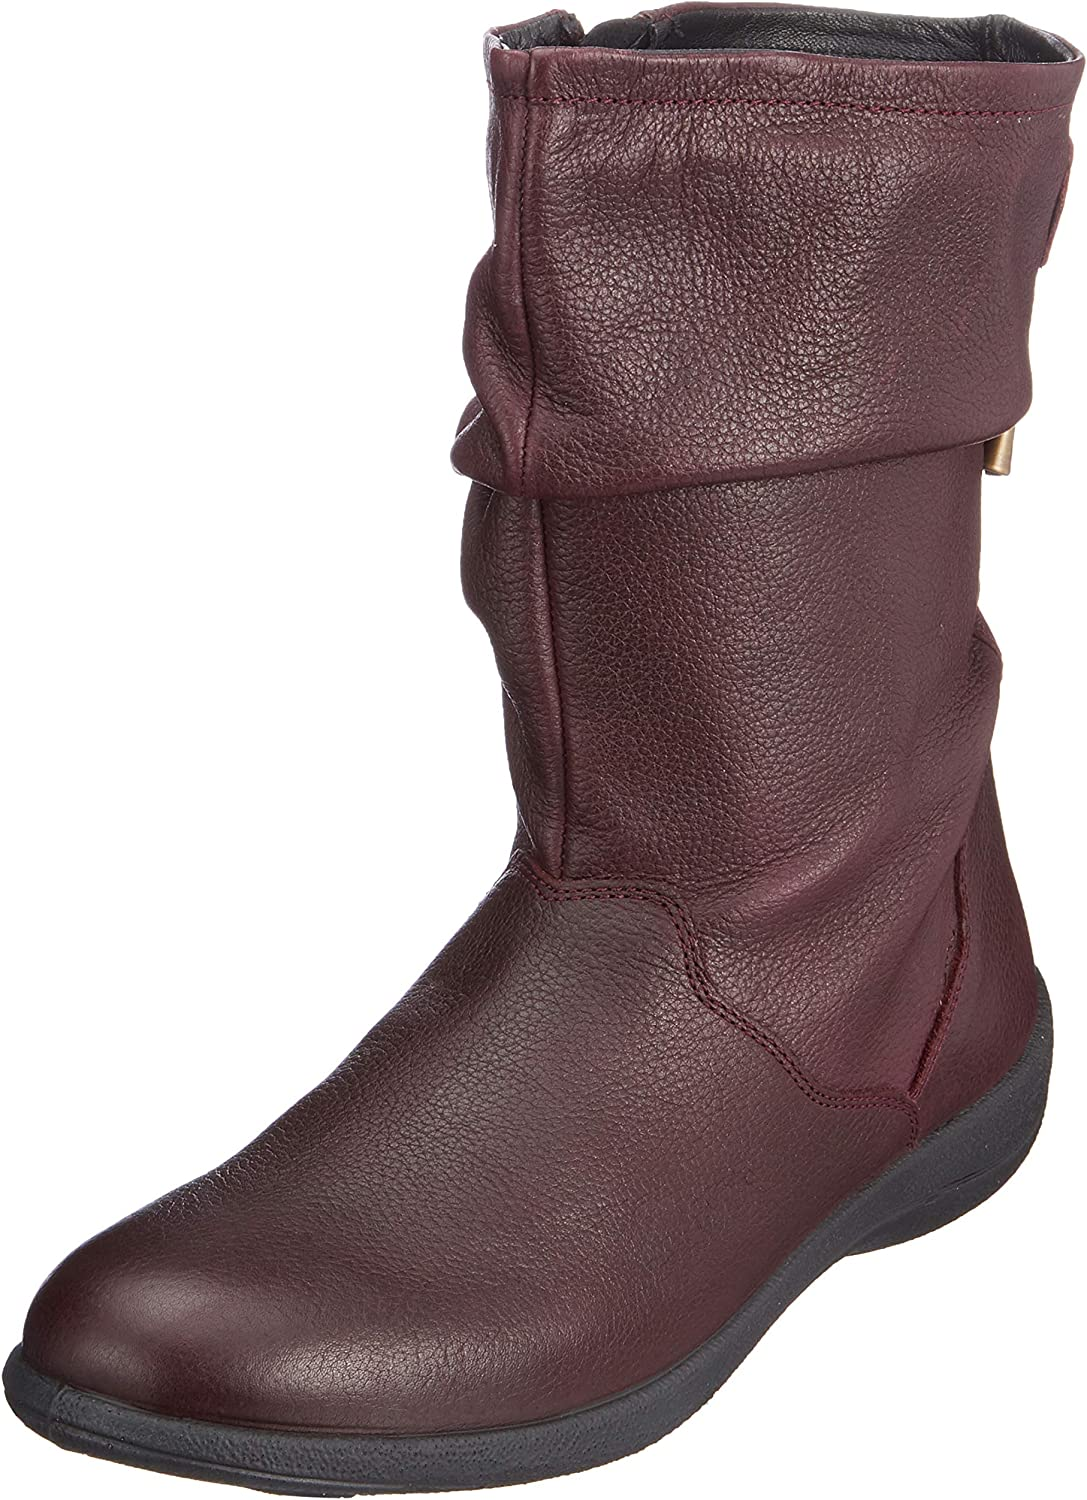 Padders Women's Max 85% OFF Max 64% OFF Boots Slouch